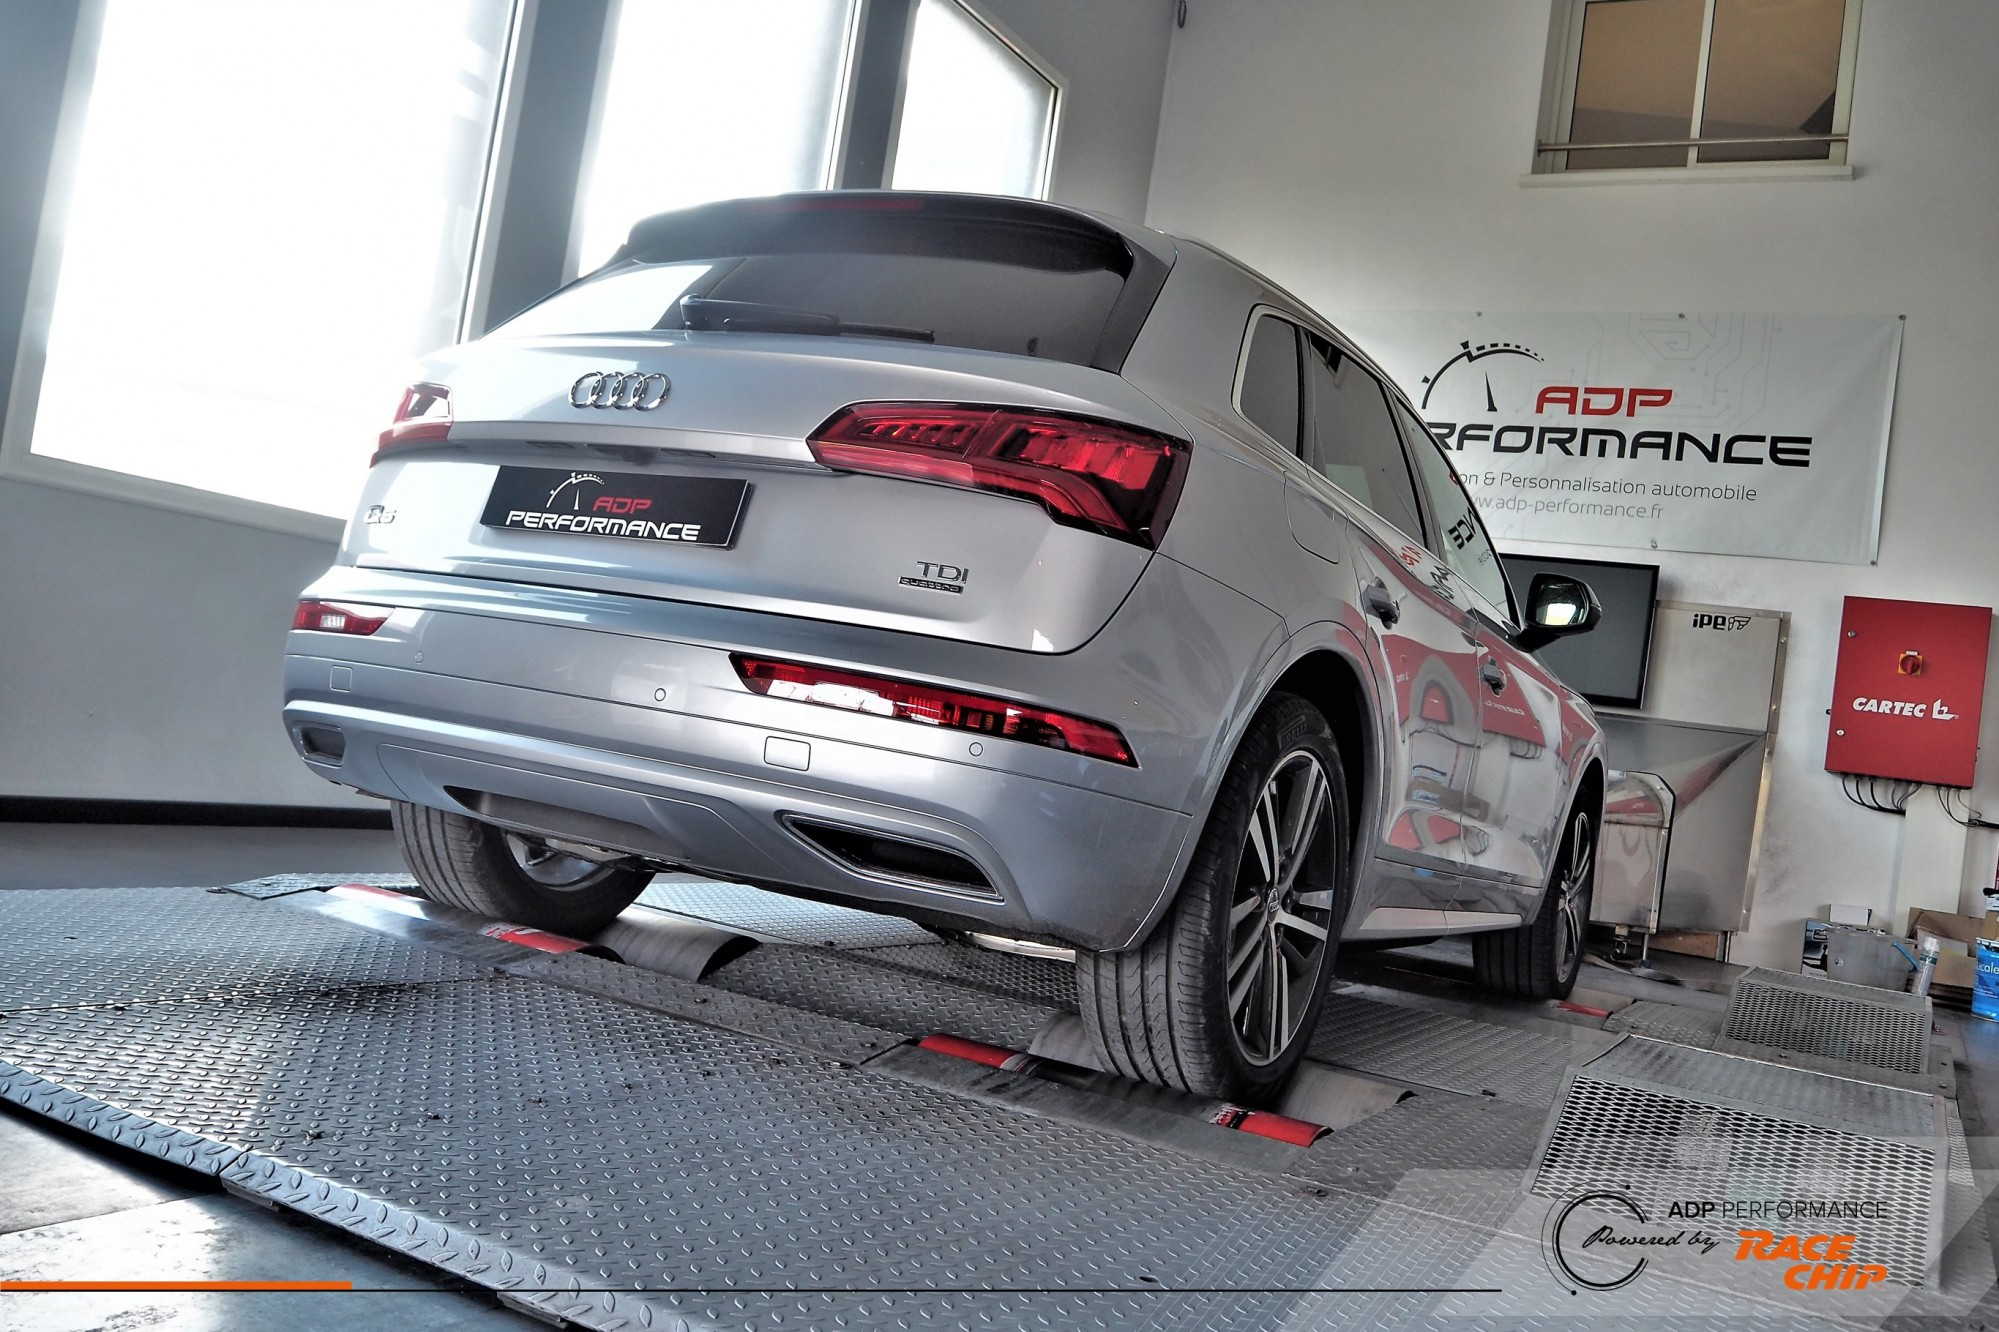 RaceChip Ultimate Connect Nimes - Audi Q5 (2017) 2.0 TDI 190cv - ADP Performance